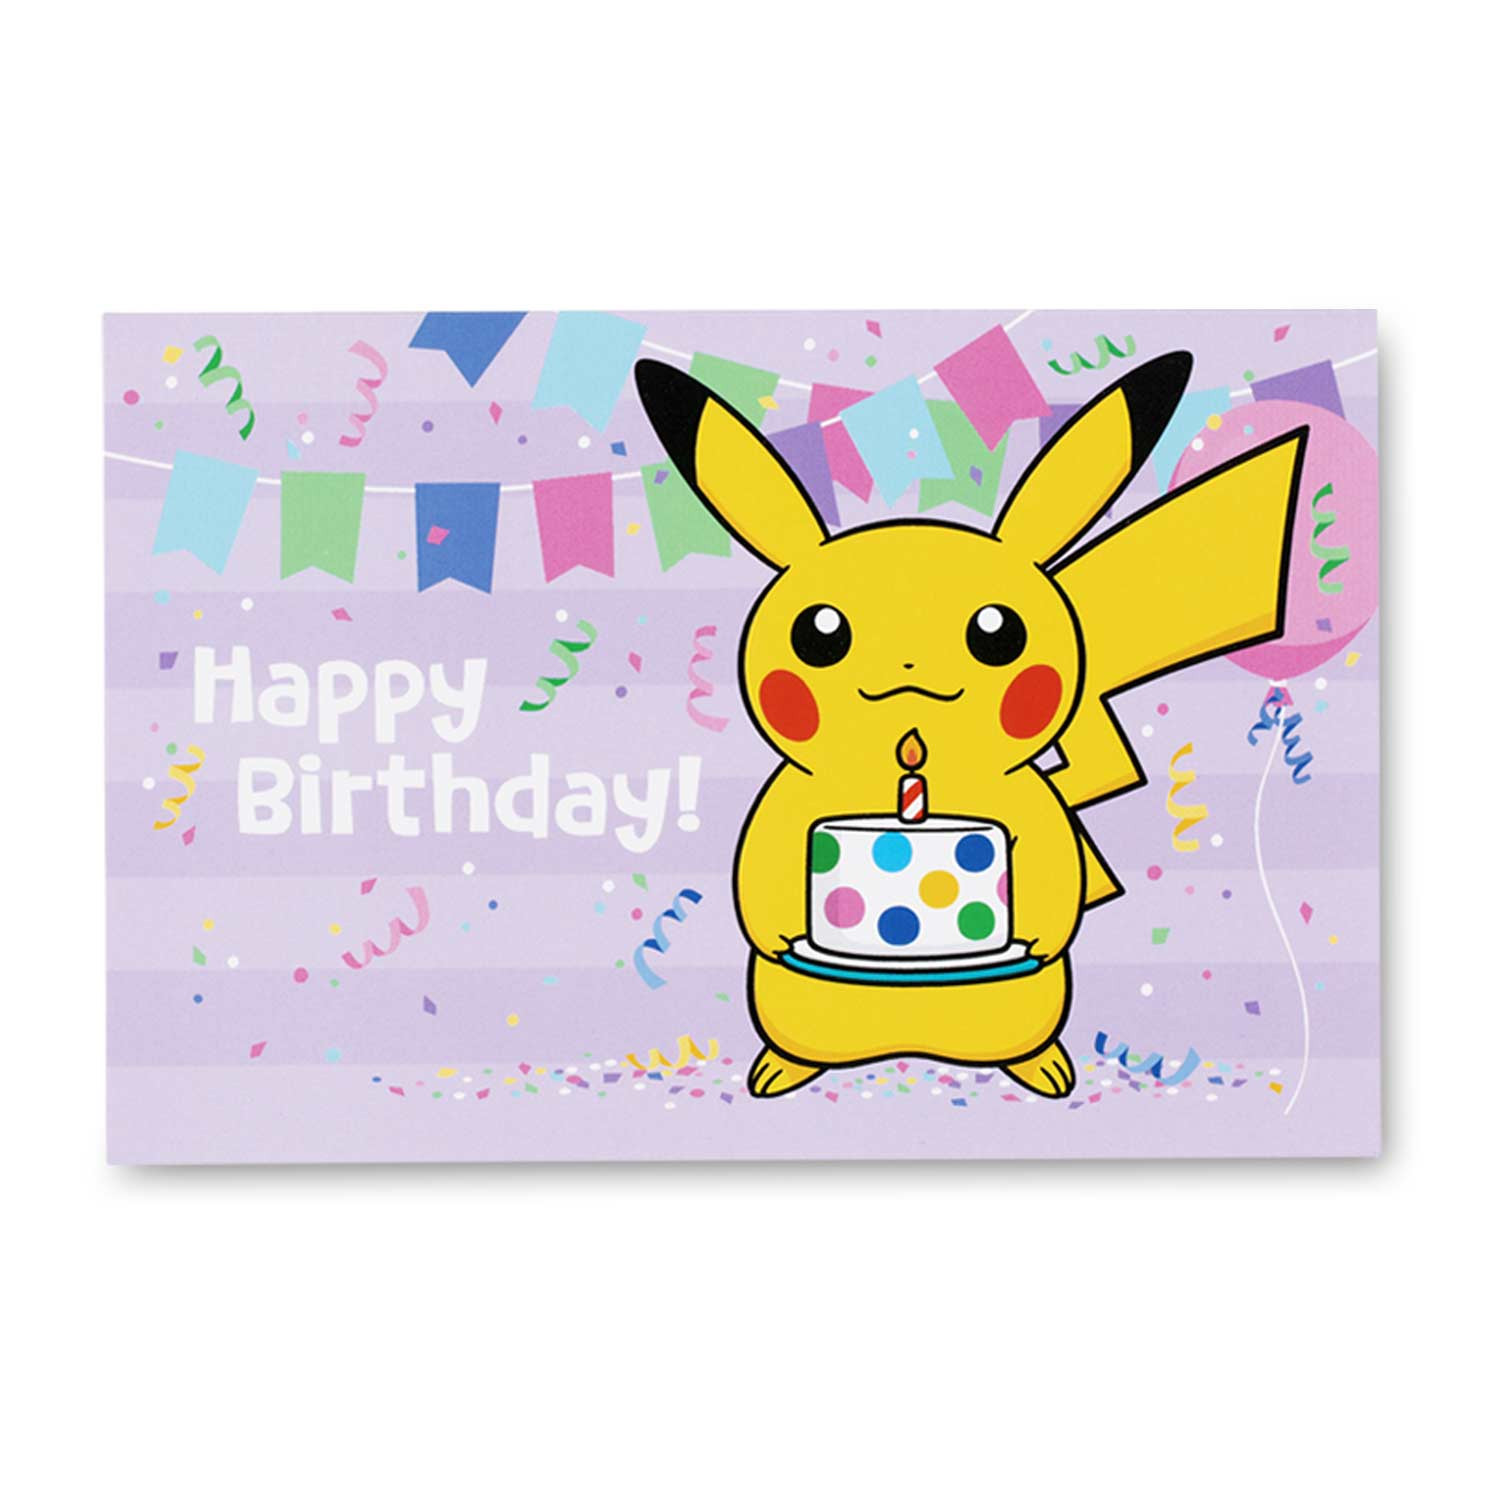 Best ideas about Pikachu Birthday Card . Save or Pin Pikachu Greeting Card Set 6 Birthday 2 Thank You & 4 Now.